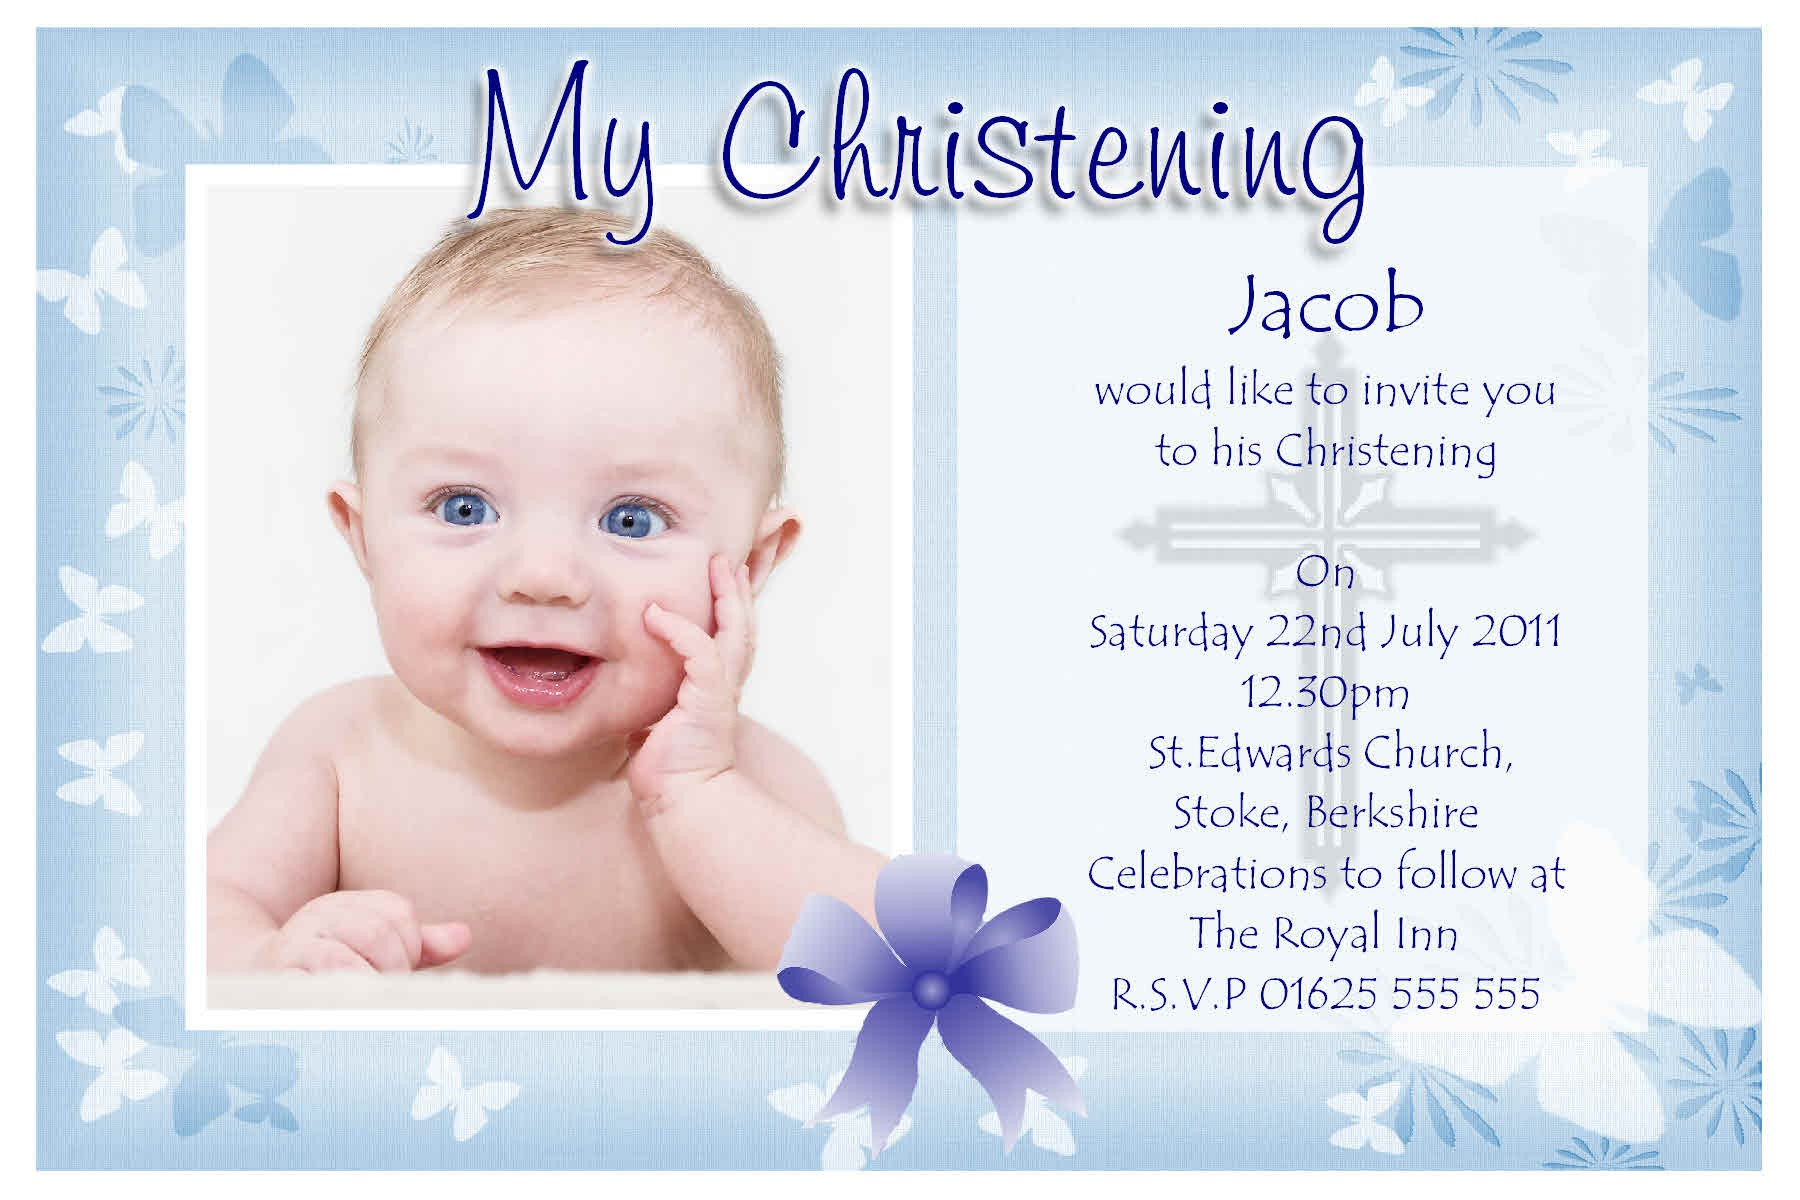 invitation card maker for christening and birthday ; invitation-card-maker-for-christening-and-birthday-best-of-free-christening-invitation-templates-of-invitation-card-maker-for-christening-and-birthday